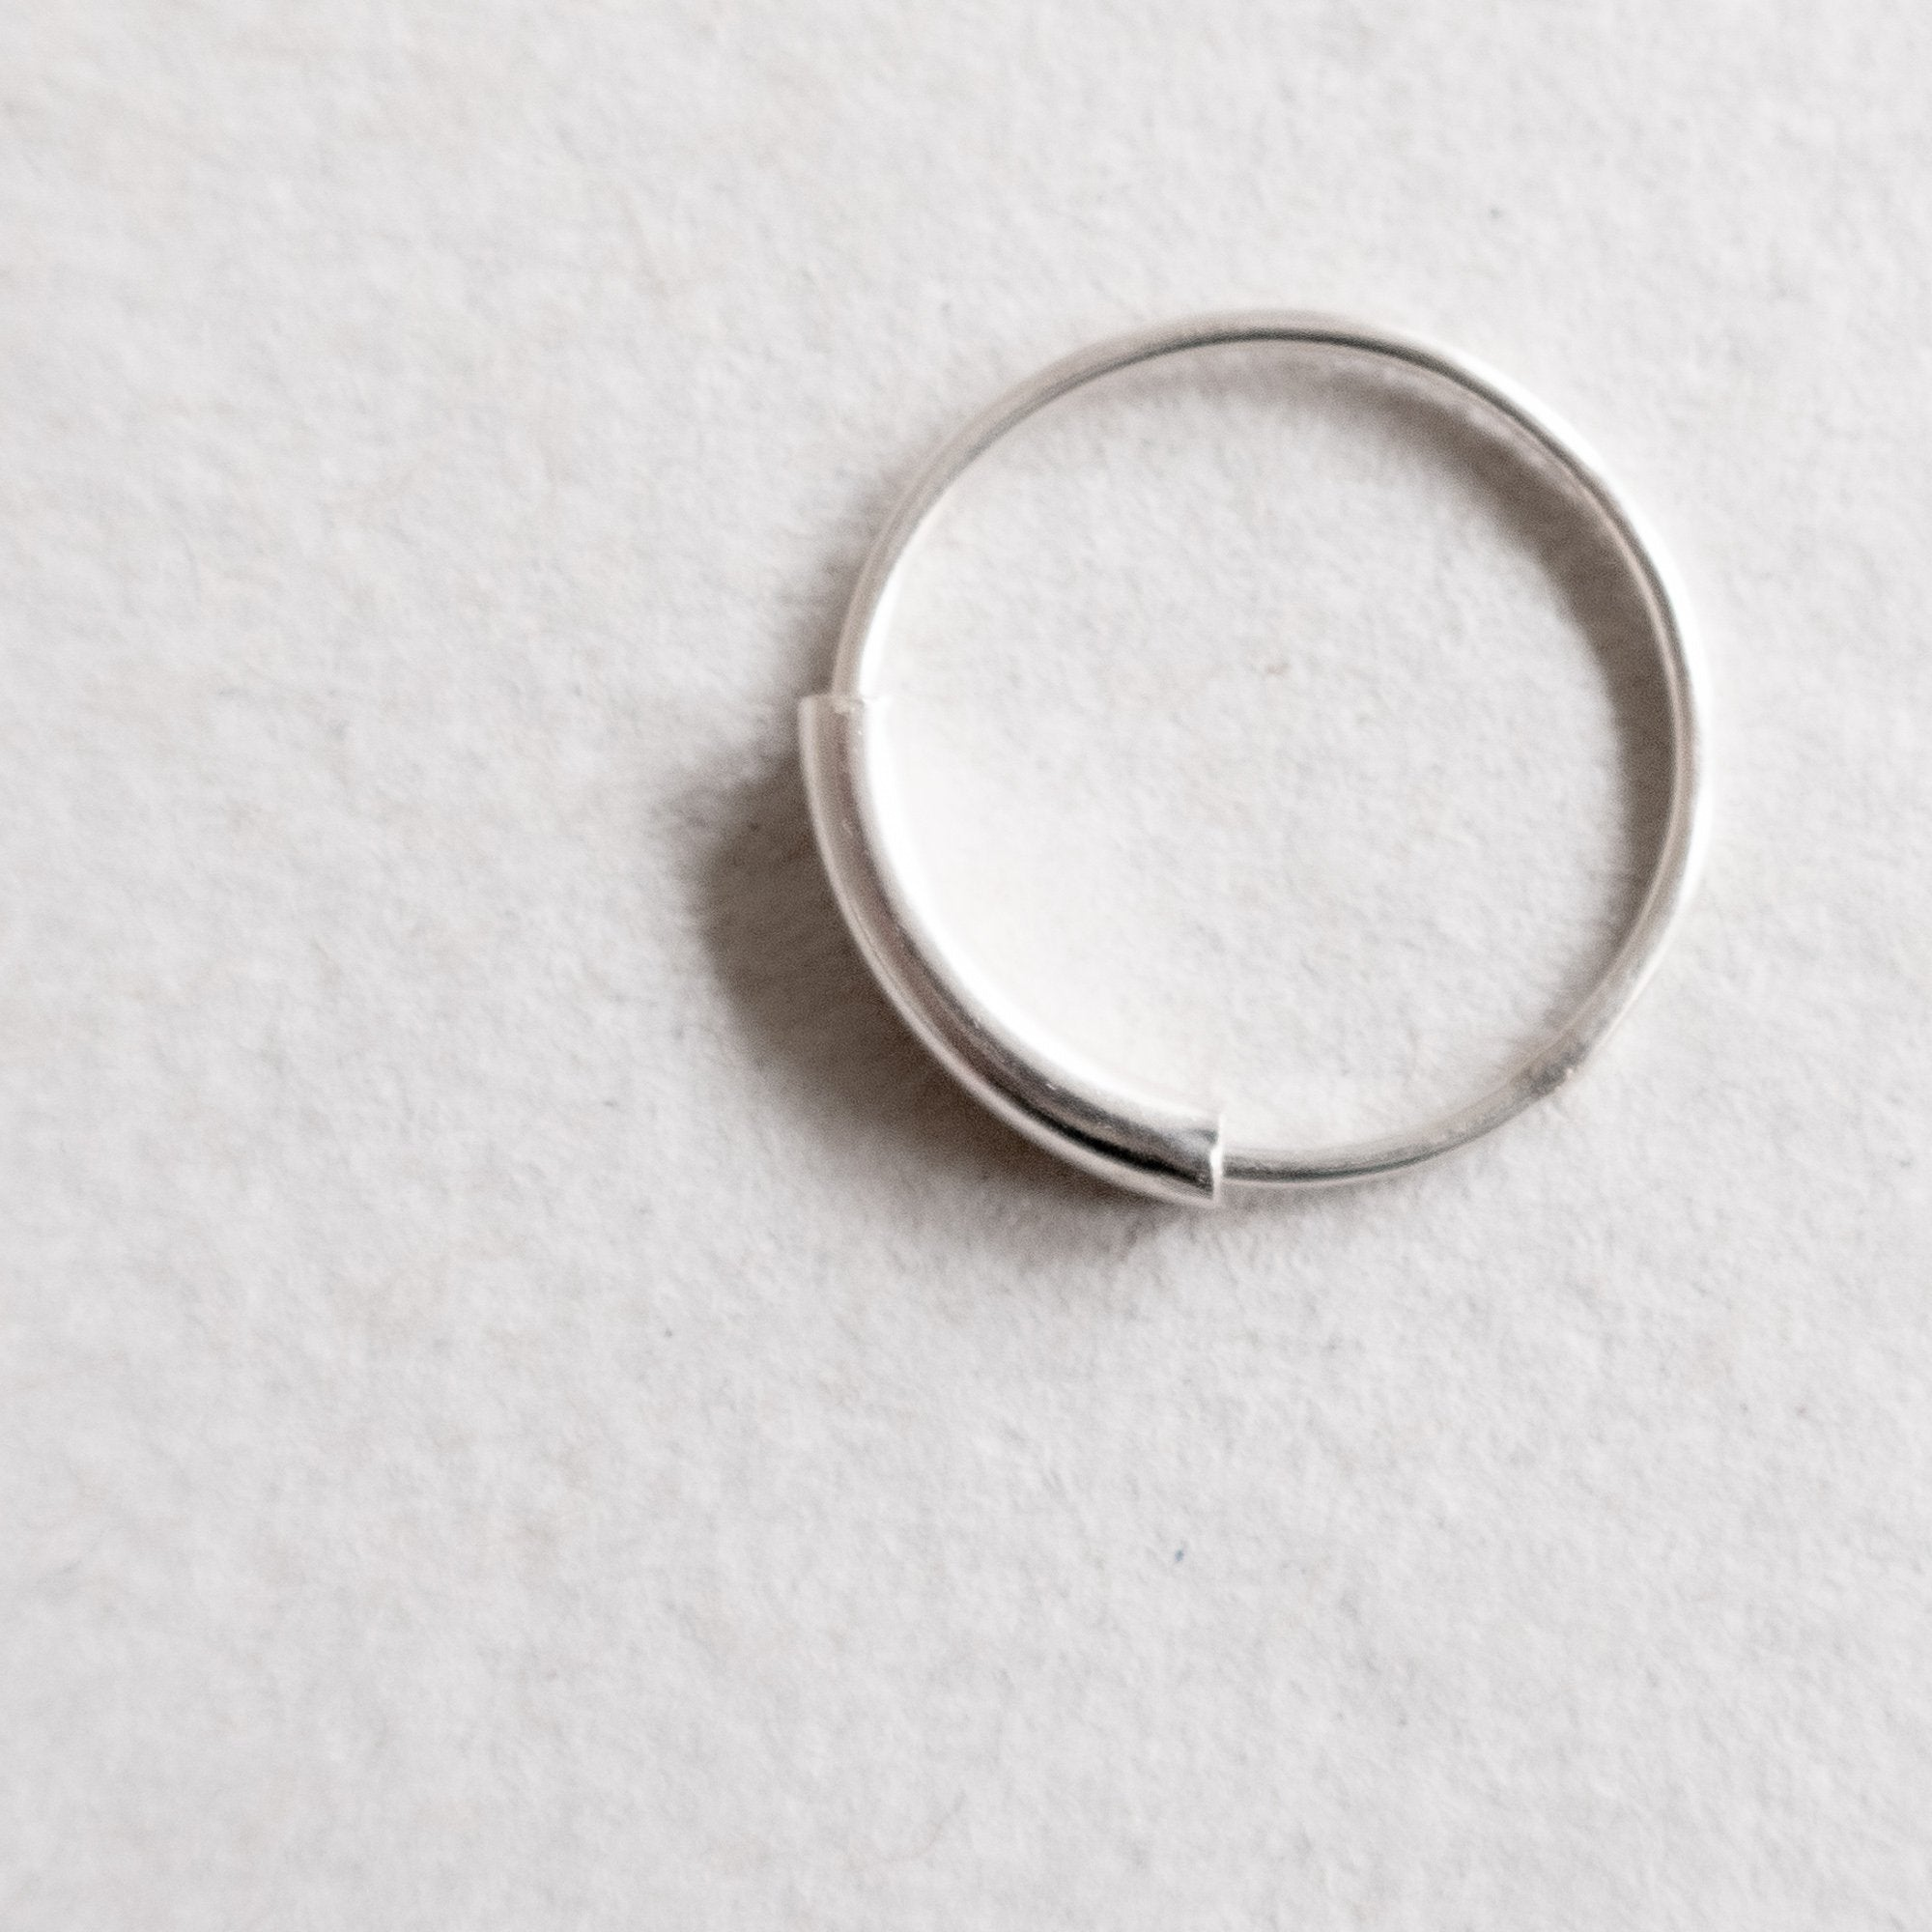 movable ring to play around